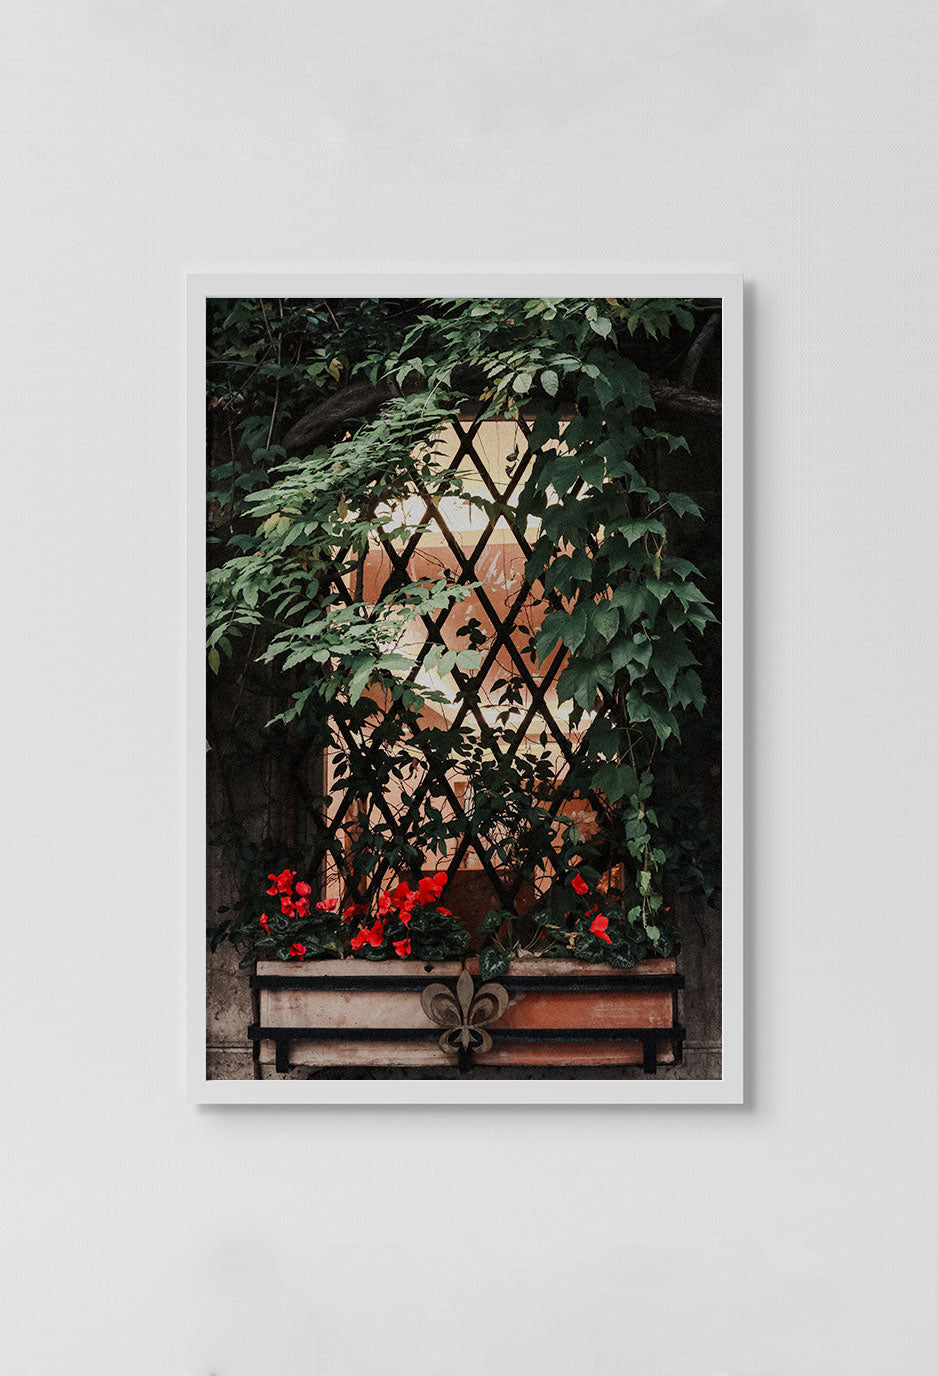 image of photo of glass window panes with hanging flower basket on outside of window and leaves over window in white frame on white wall.